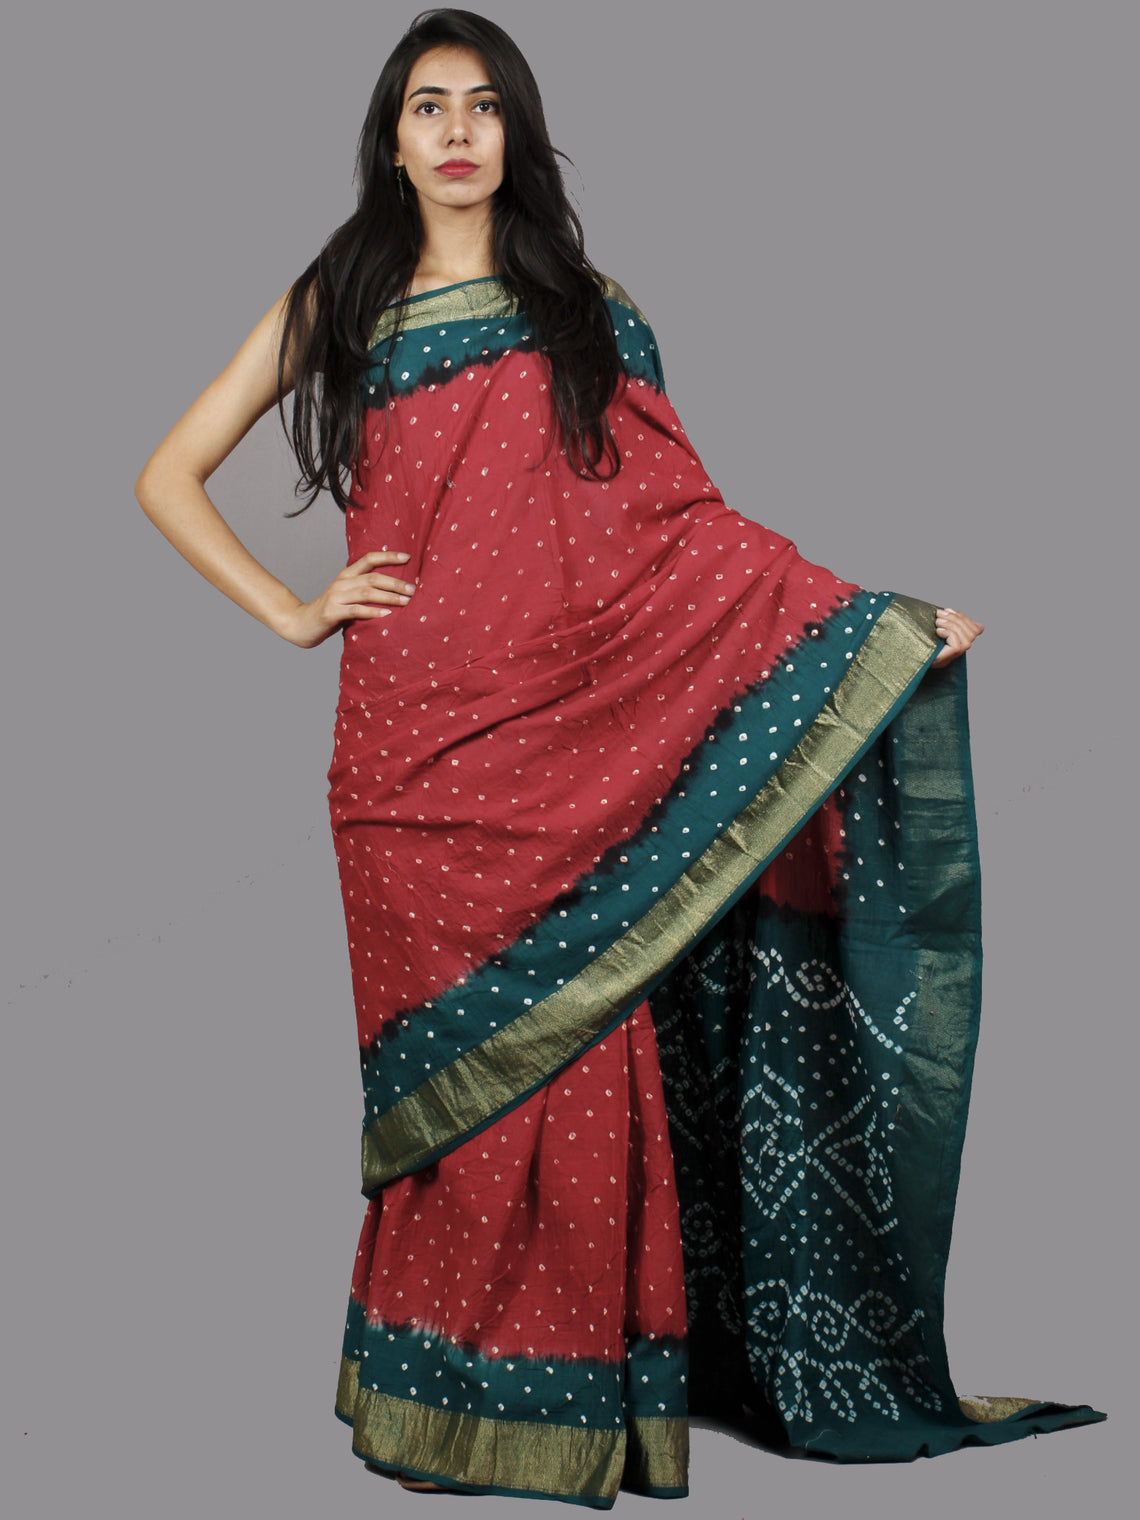 Maroon Peacock Green White Hand Tie & Dye Bandhej Glace Cotton Saree With Resham Border - S031701384